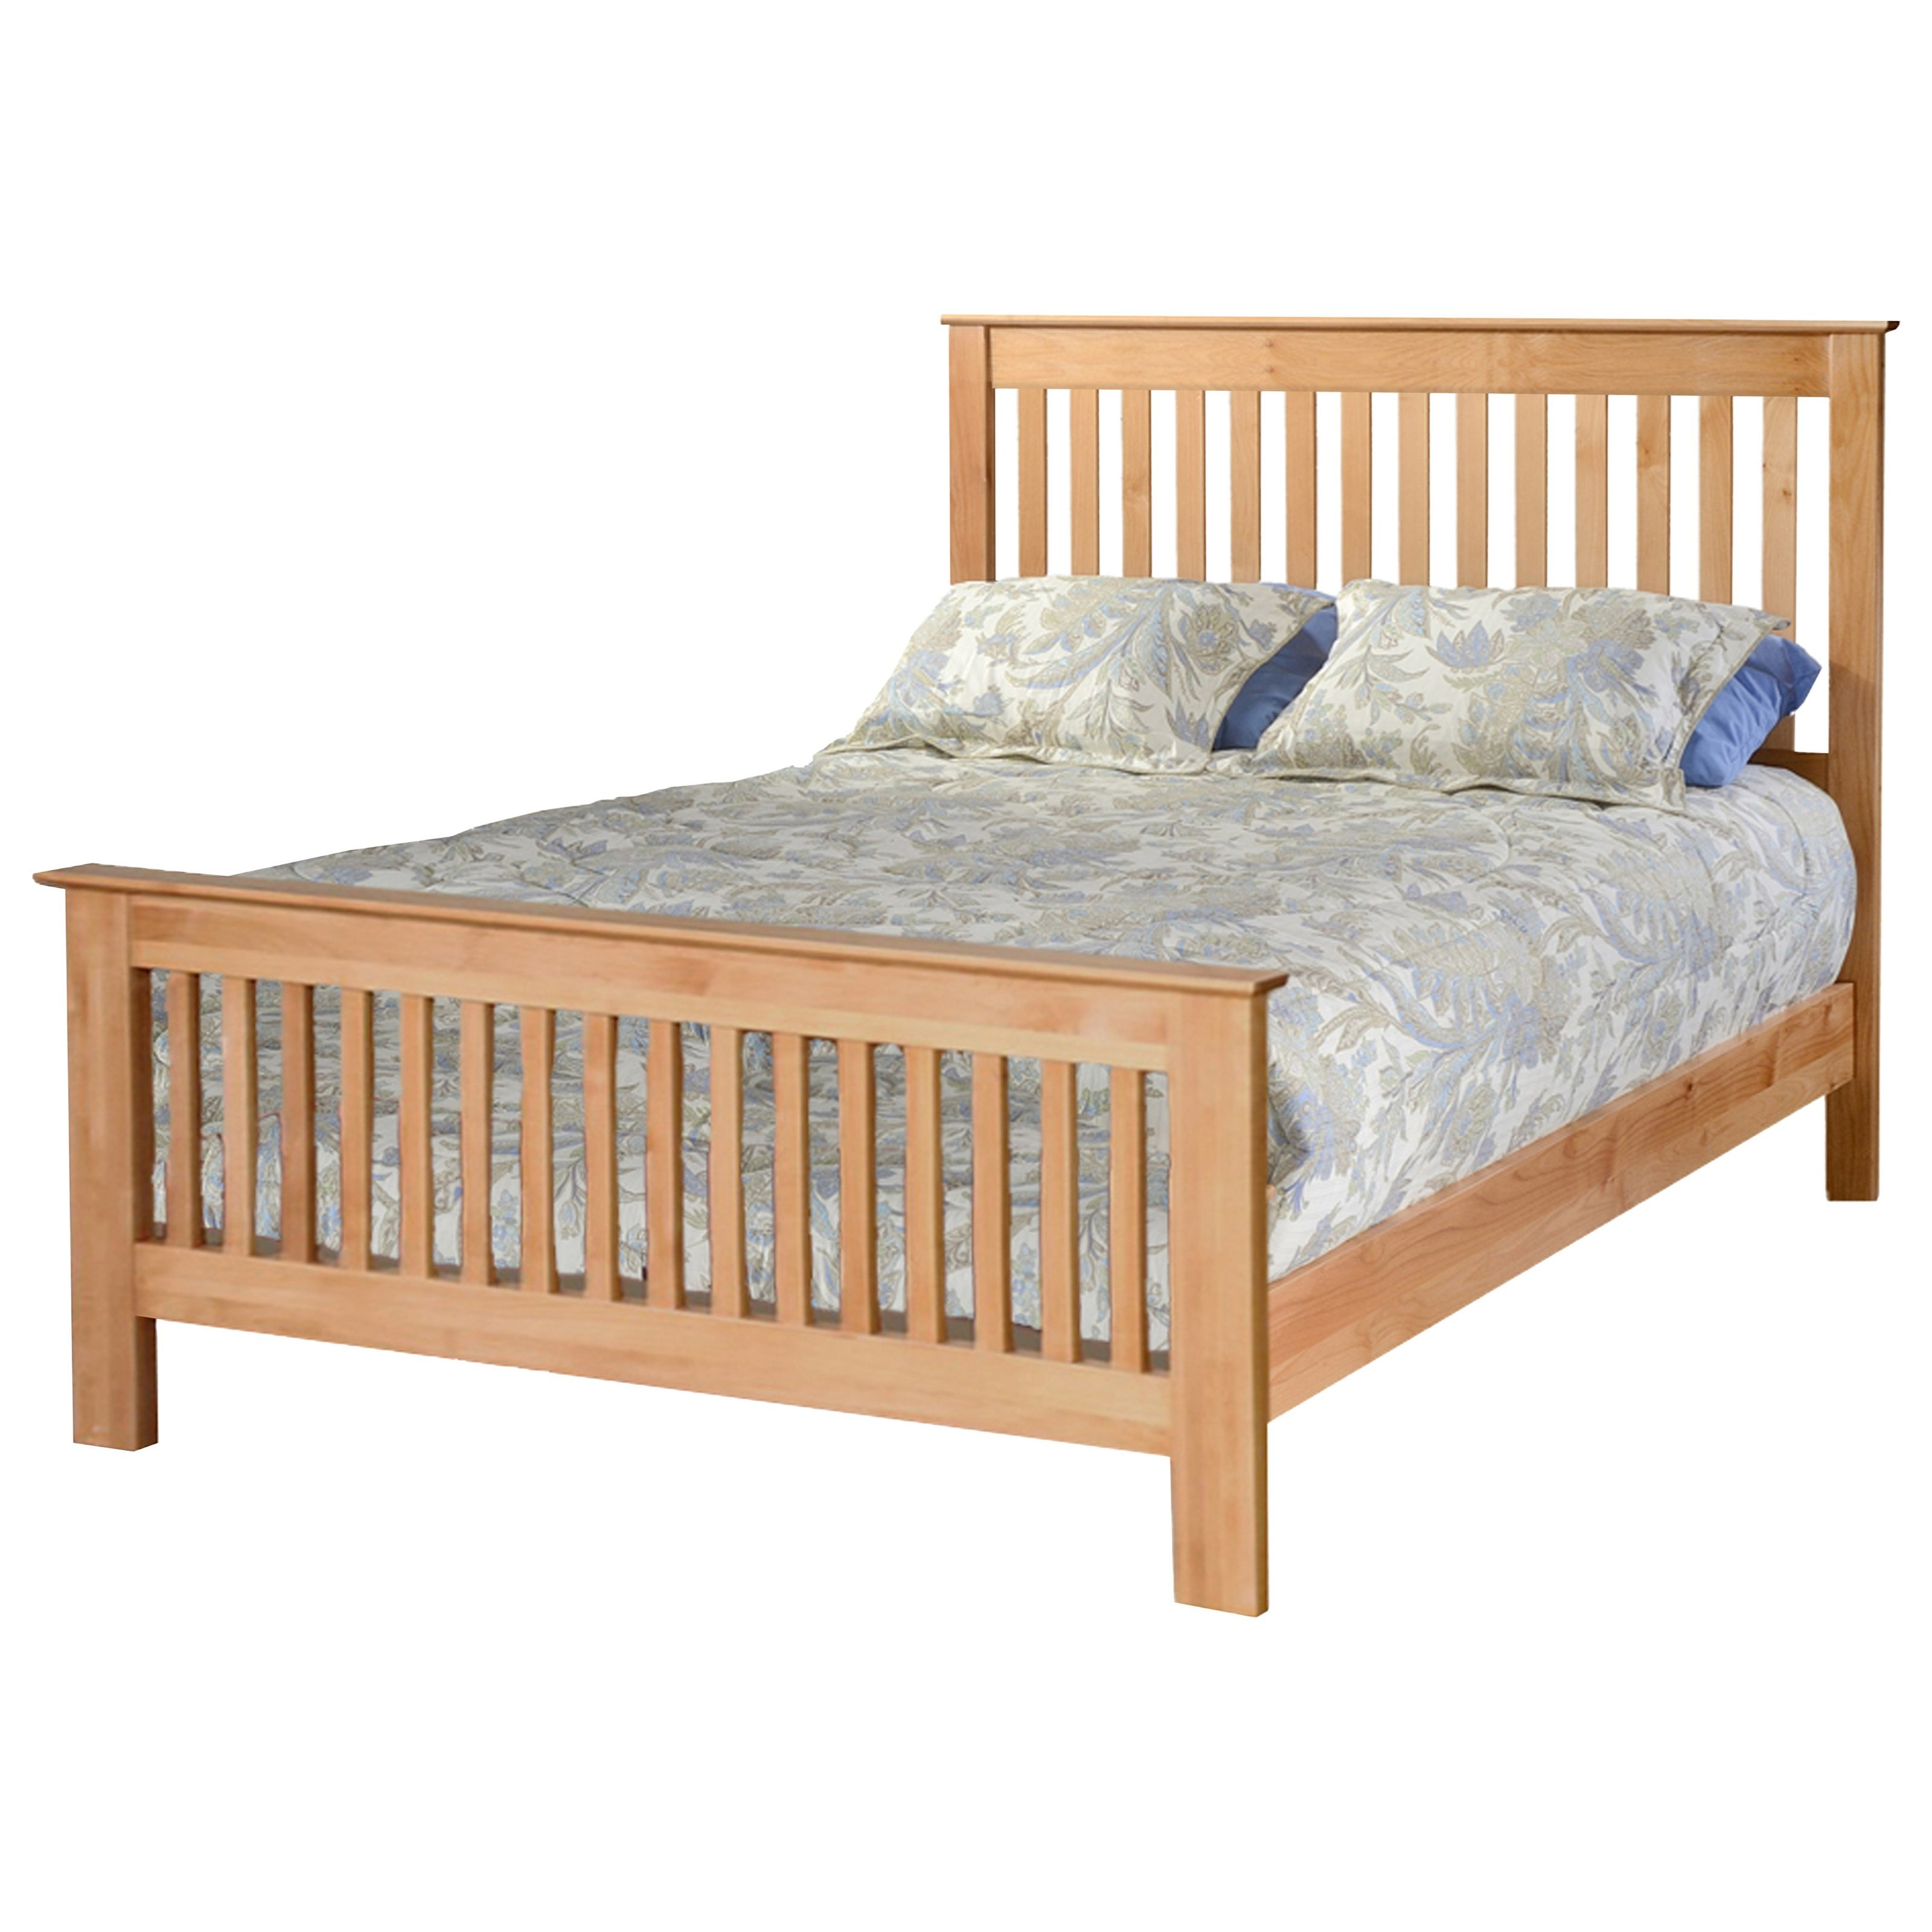 Shaker Twin Slat Bed by Archbold Furniture at Furniture and ApplianceMart